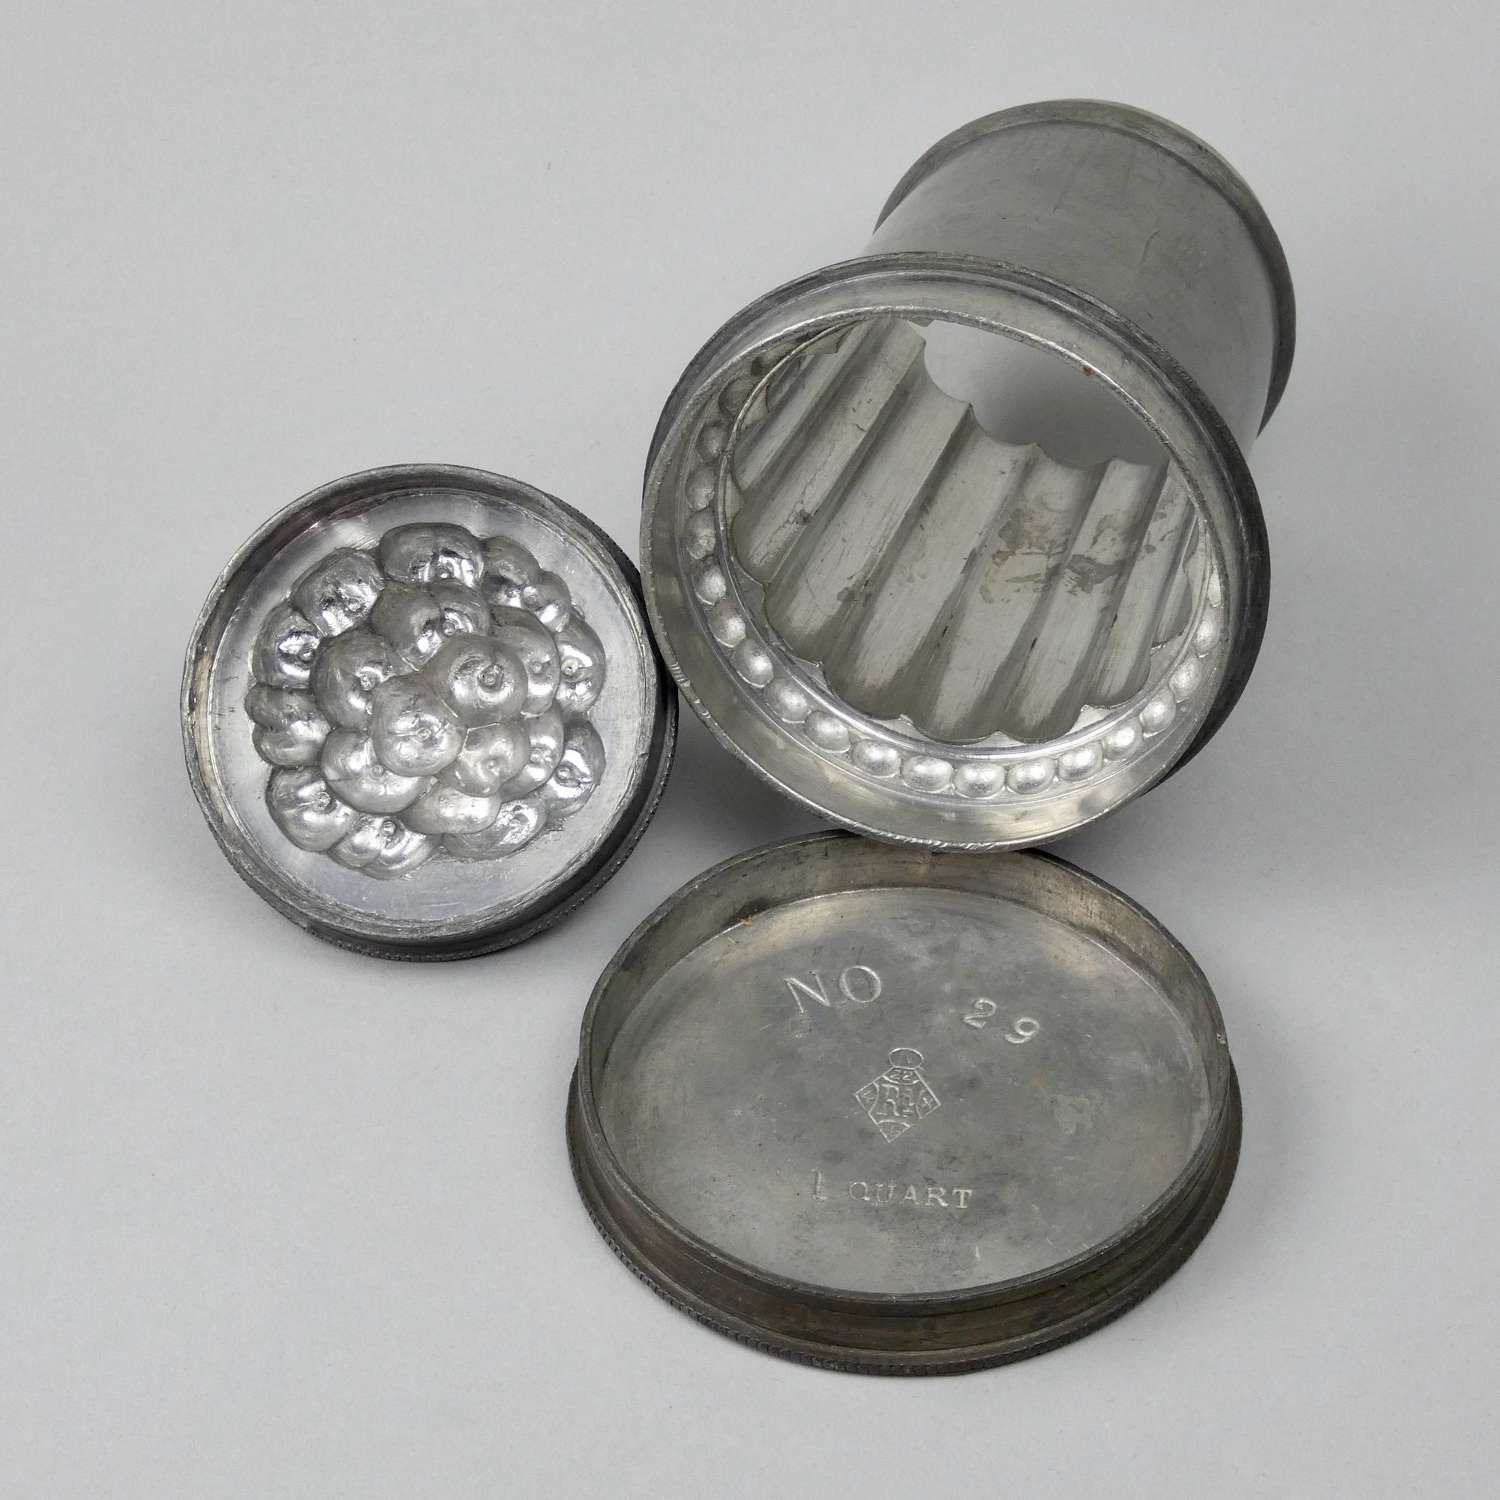 Pewter banquet mould with berries